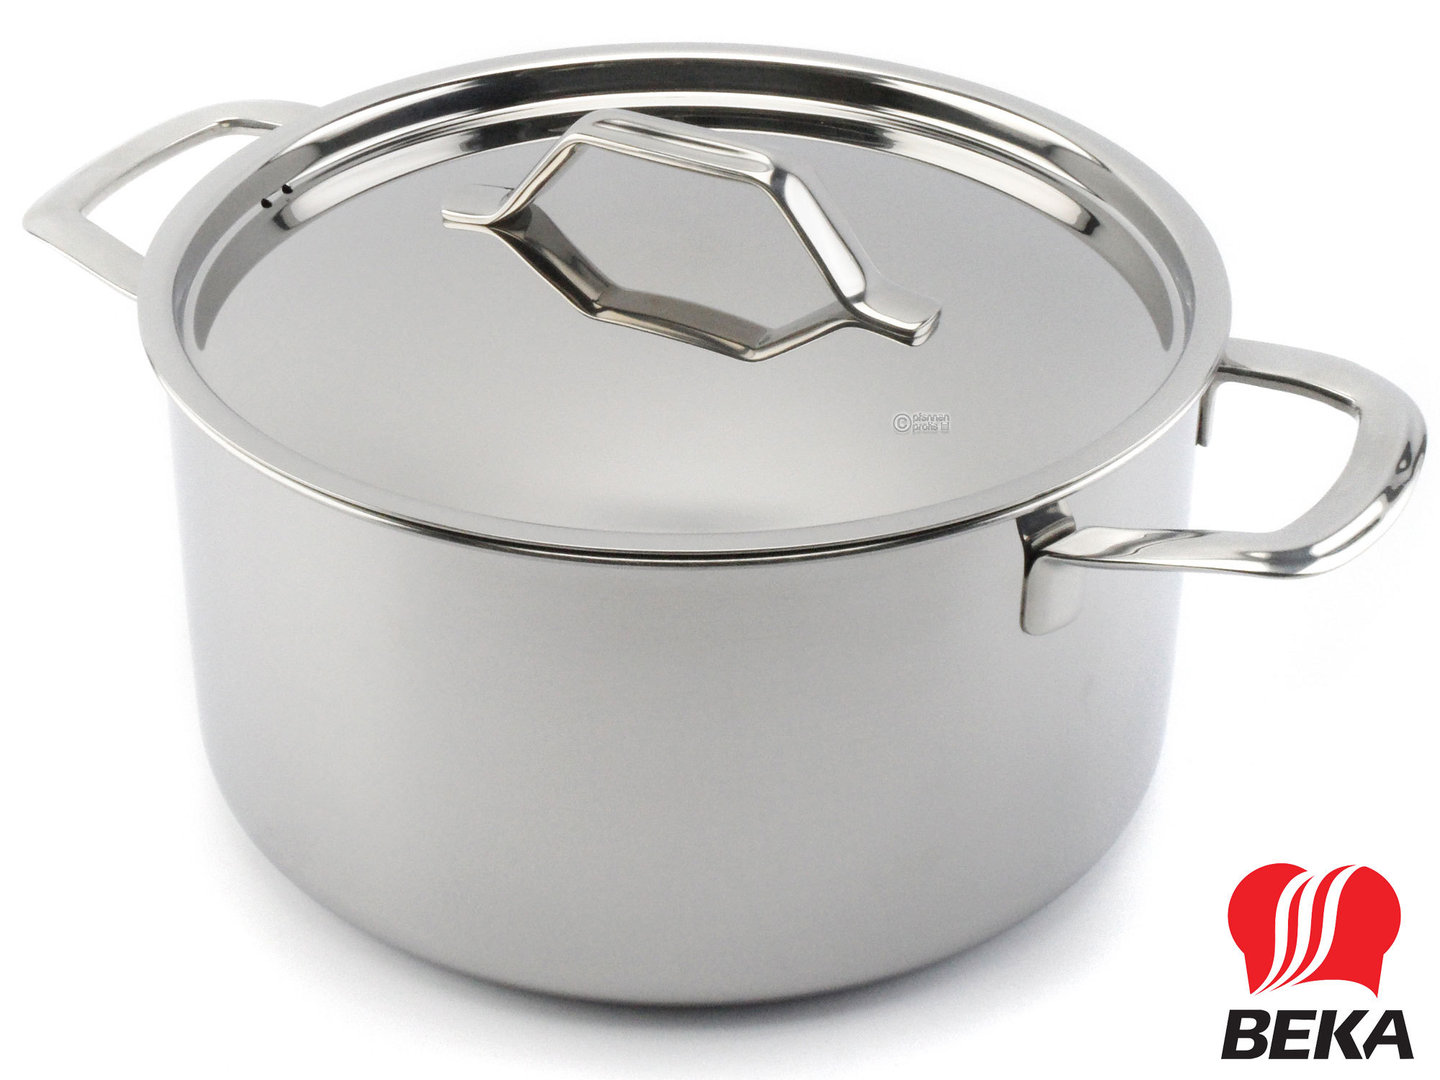 BEKA 3-ply casserole TRI-LUX 24 cm multi-layer stainless steel with lid